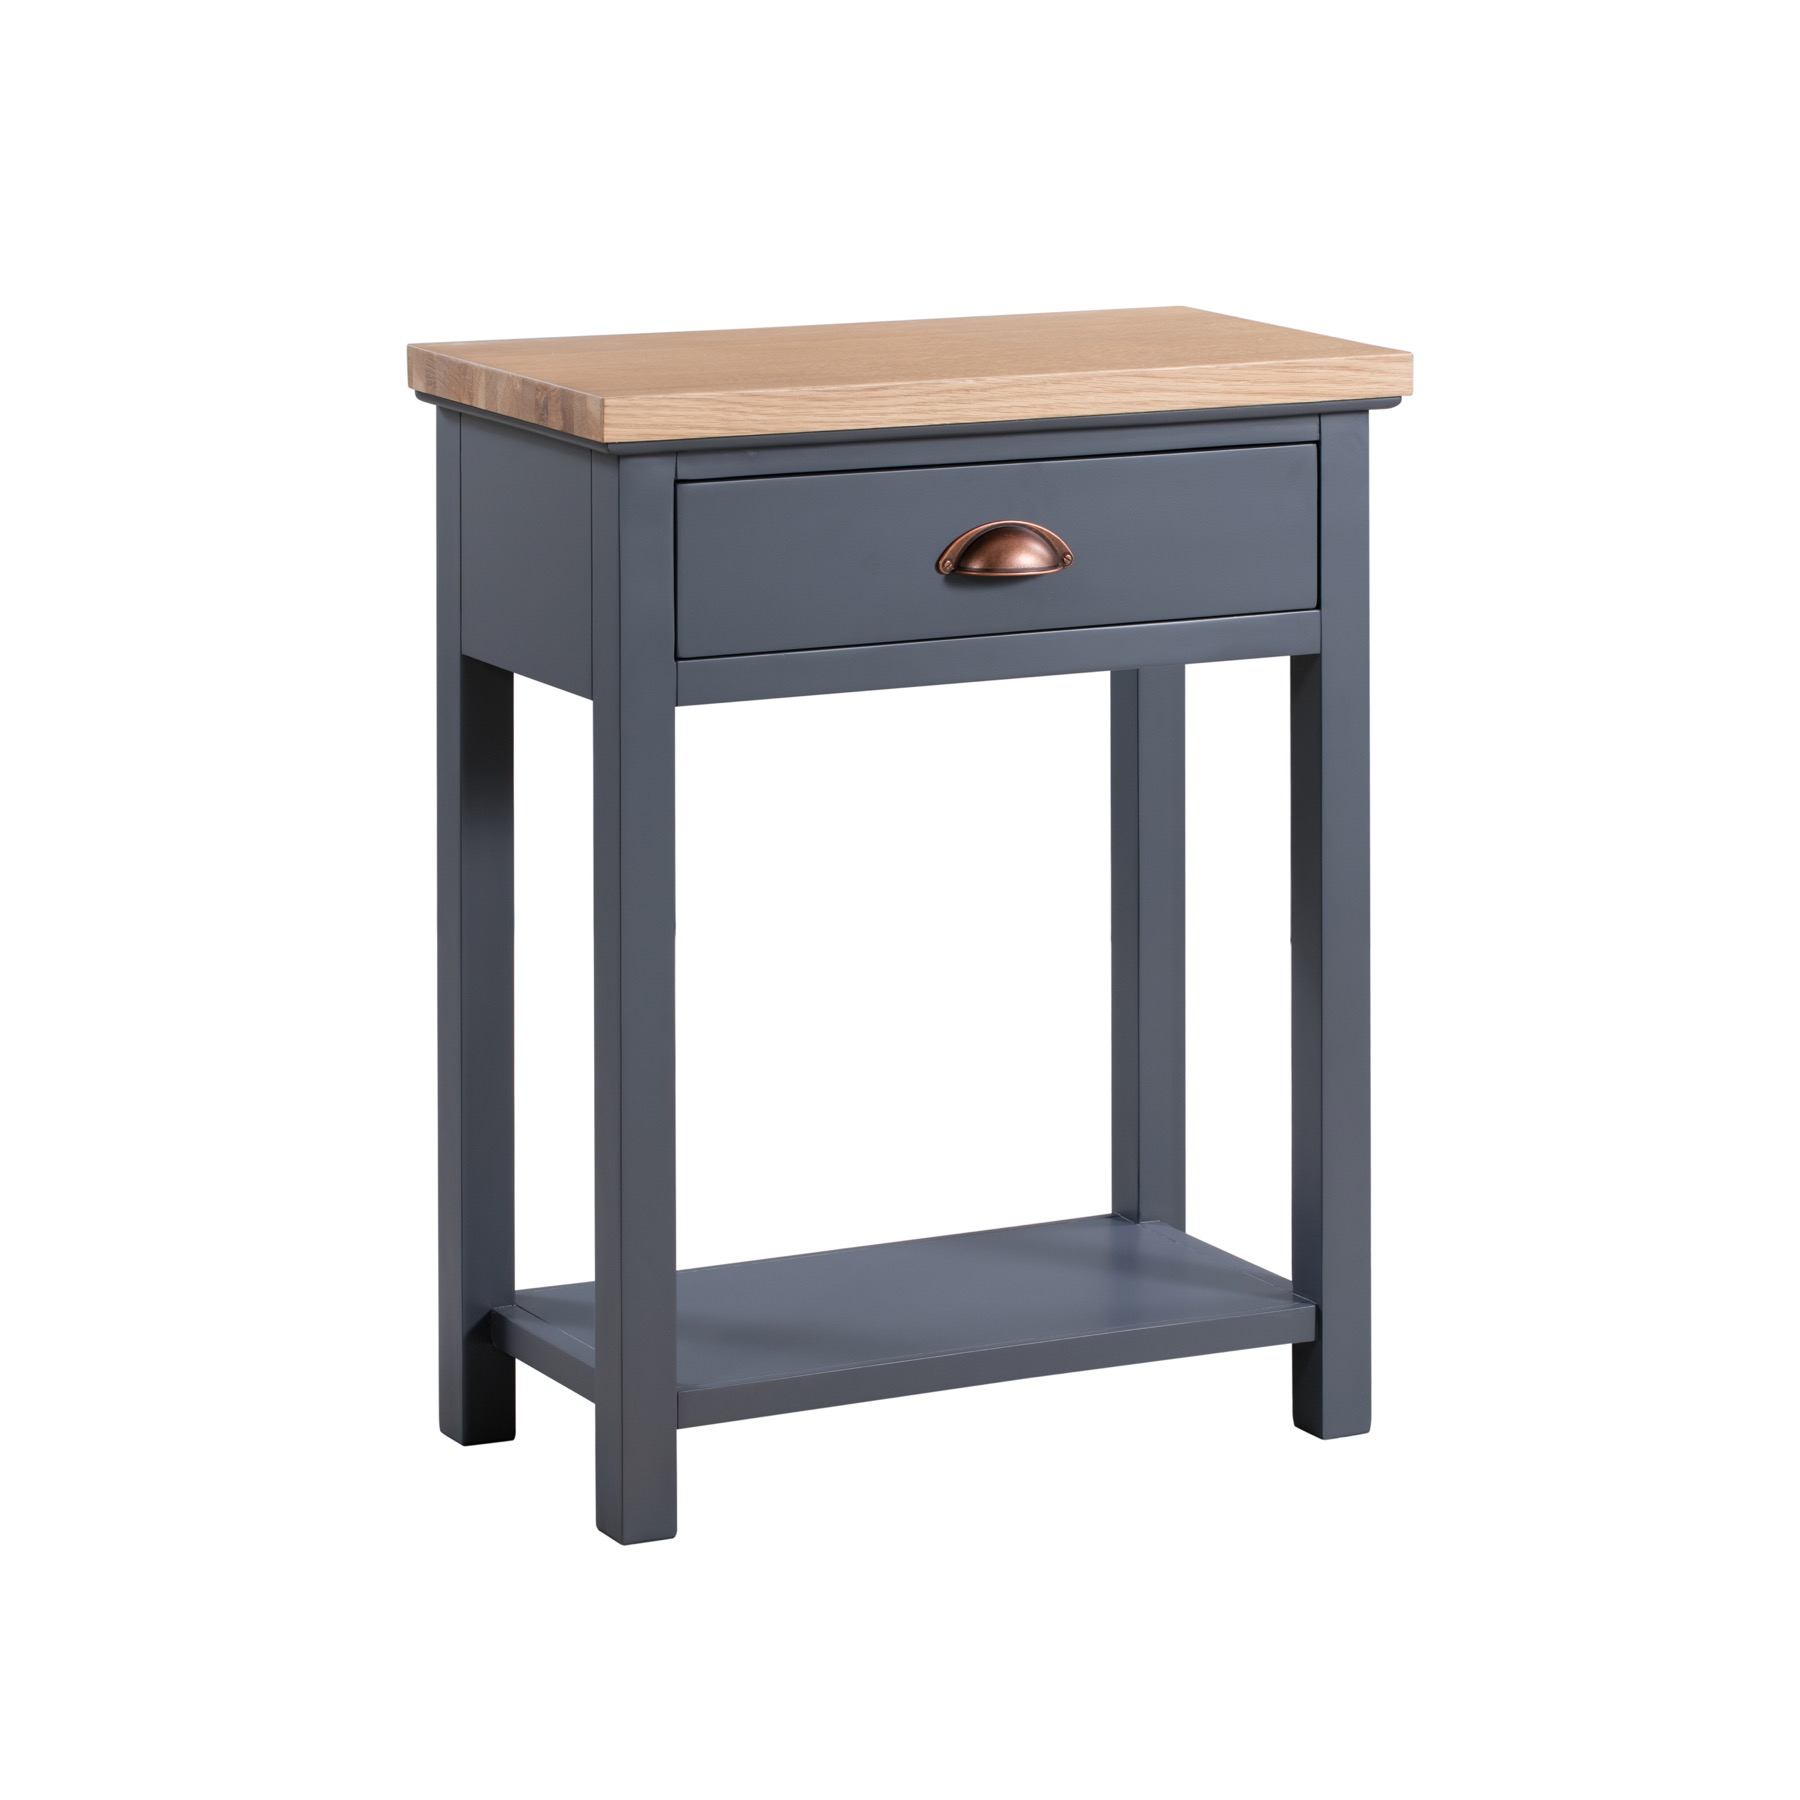 Small Grey Console Table - Grayson Range